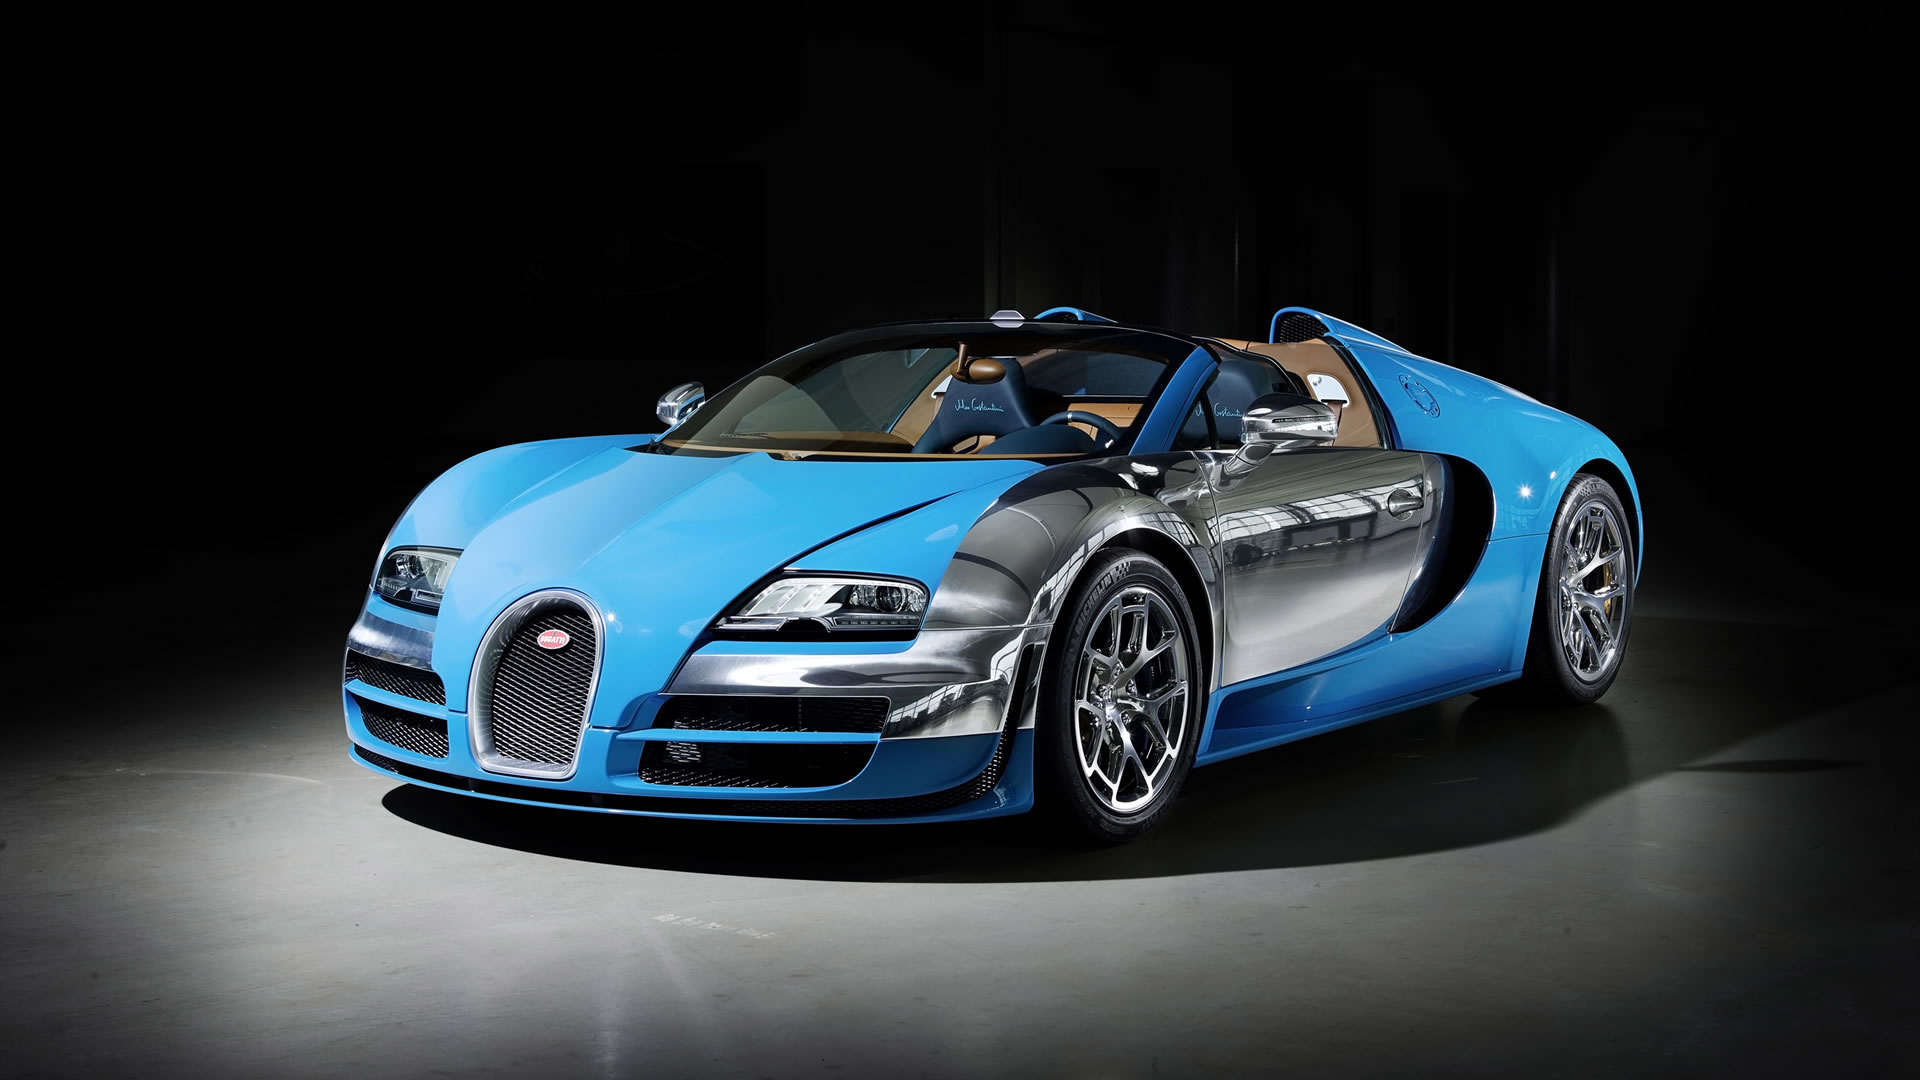 2014 bugatti veyron 16 4 grand sport vitesse meo costantini wallpaper 1920 x 1080 dark blue. Black Bedroom Furniture Sets. Home Design Ideas